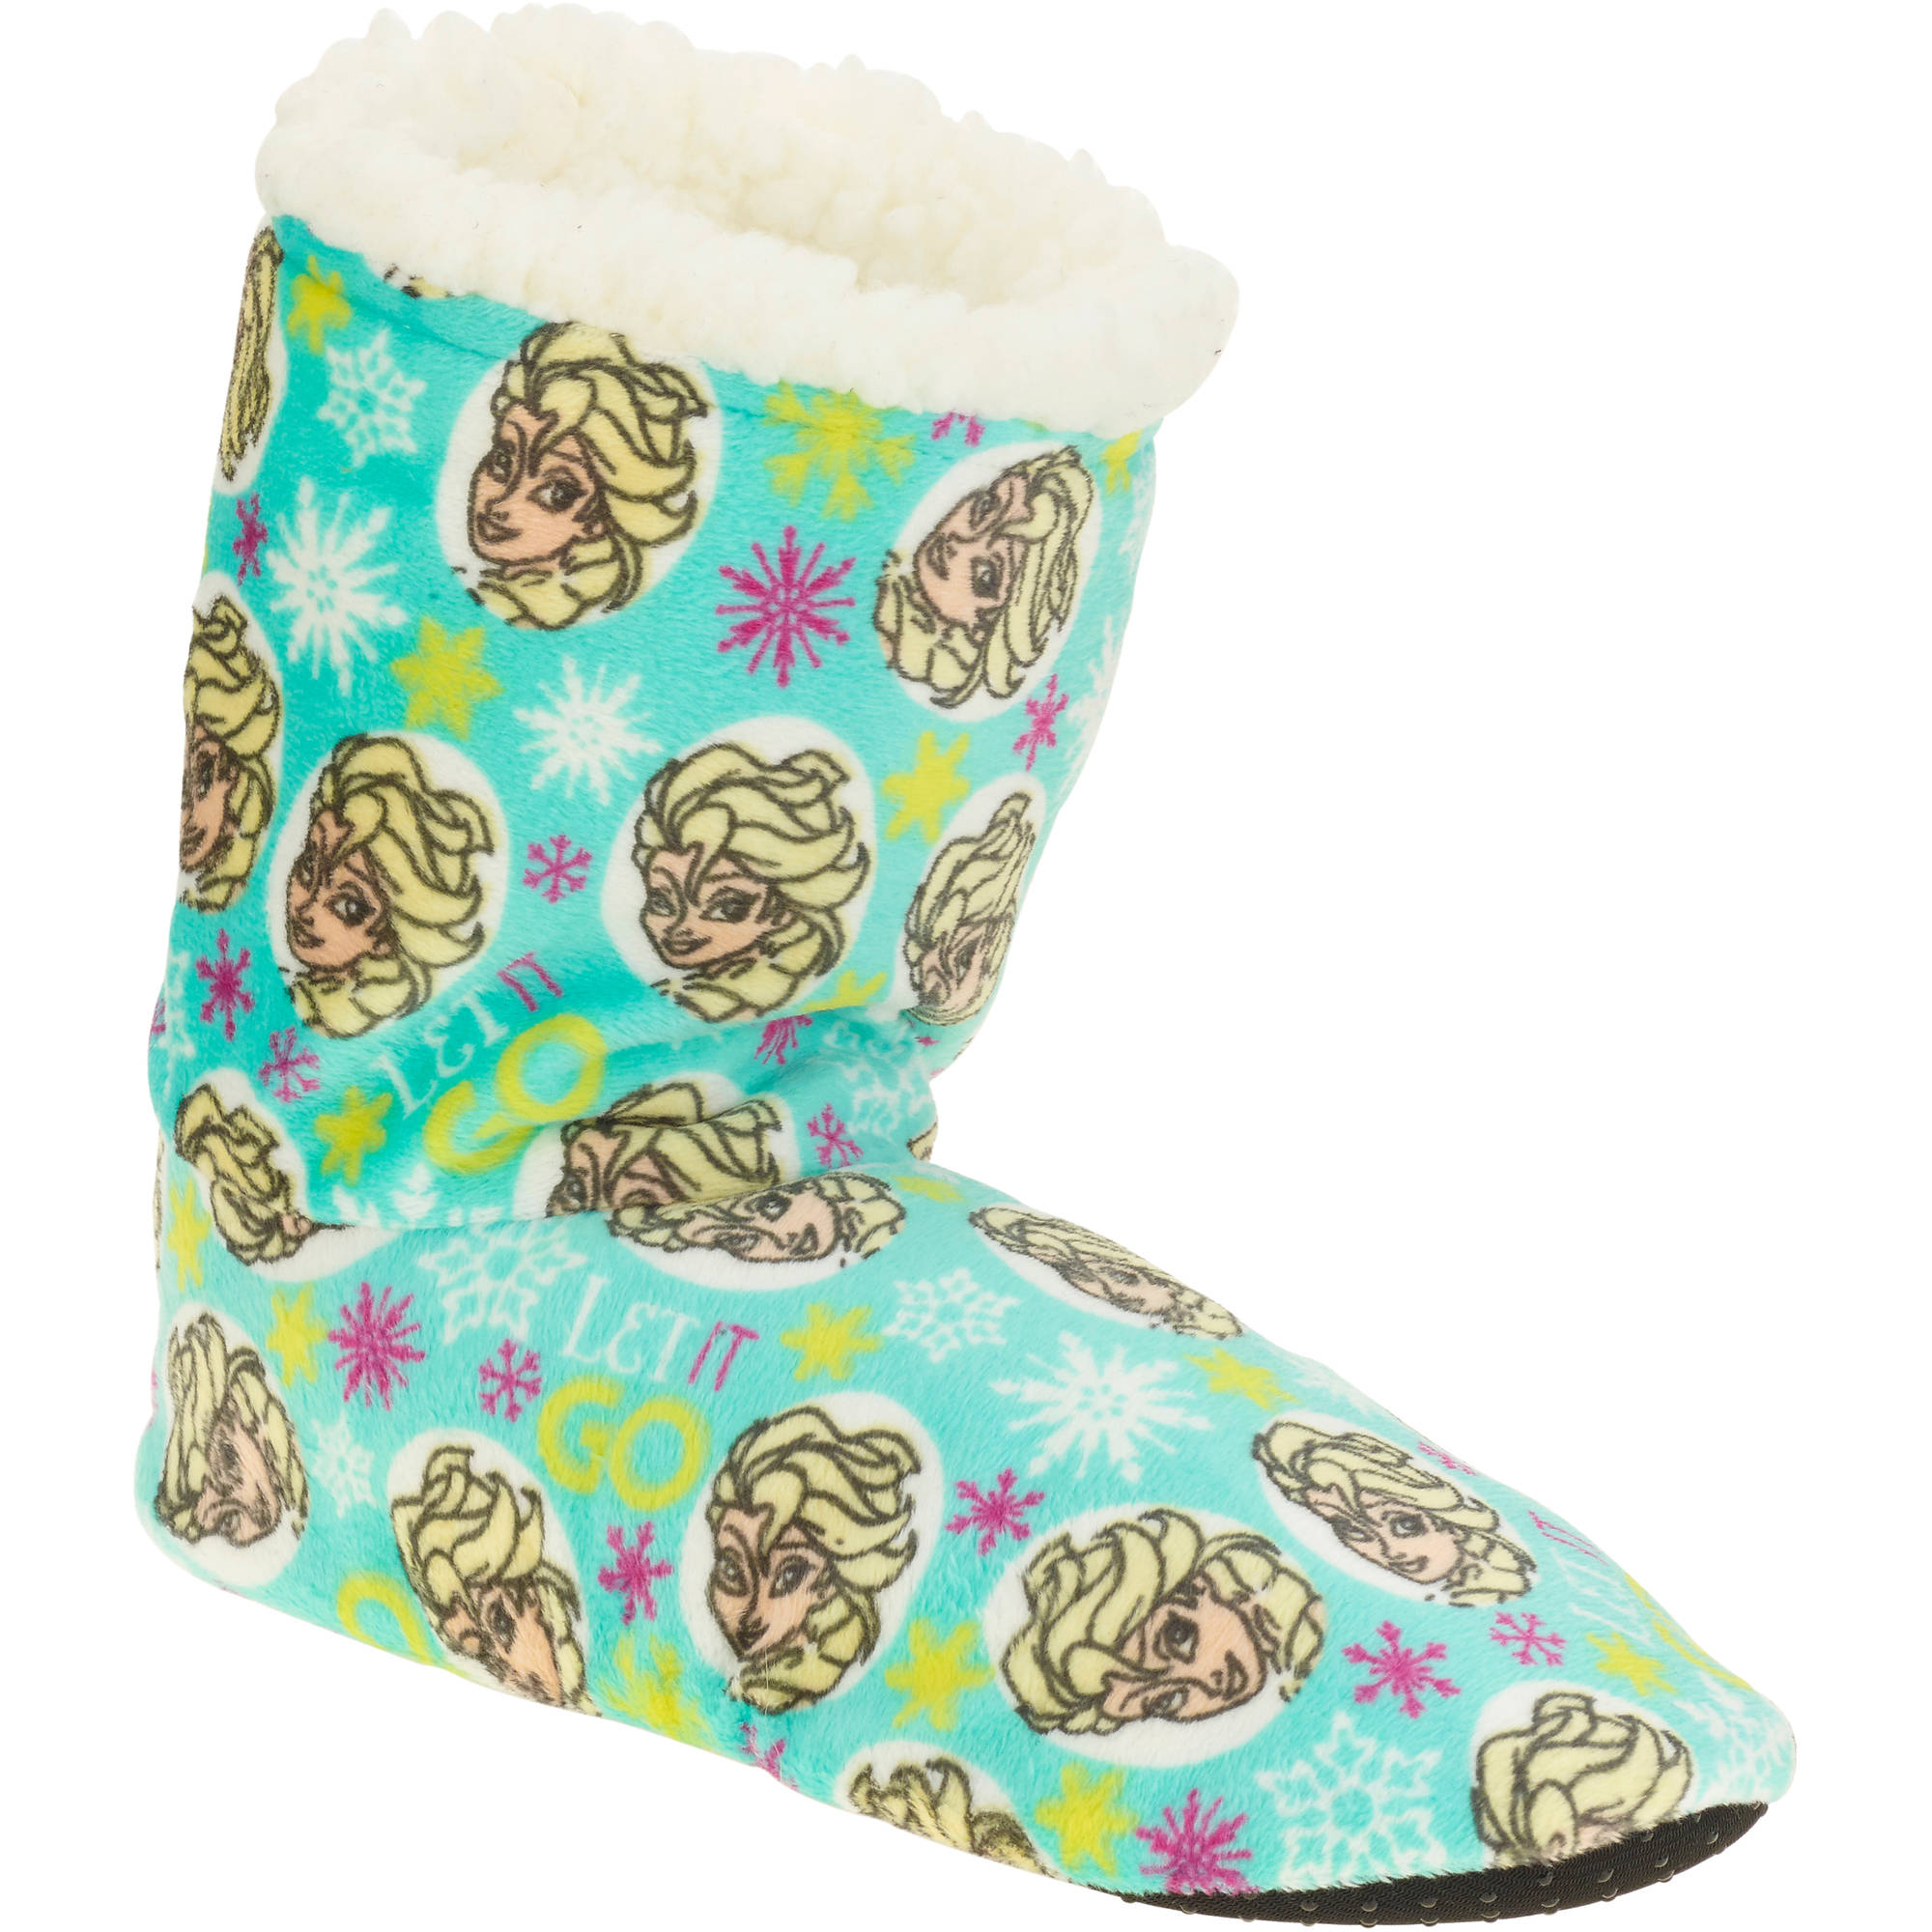 Silky Suede Fuzzy Babba Elsa Let It Go Printed Bootie Slipper Socks